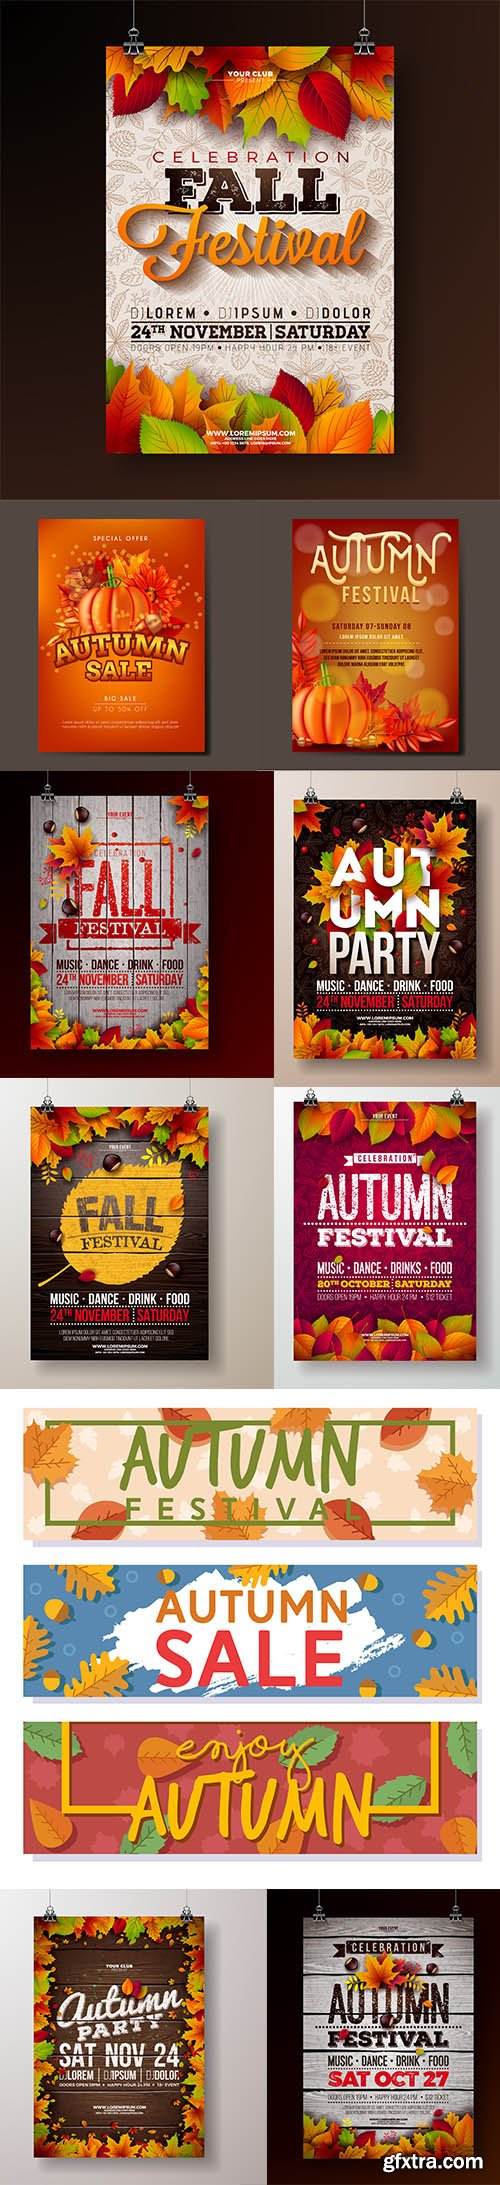 Autumn Festival Flyer and Banner Template Set